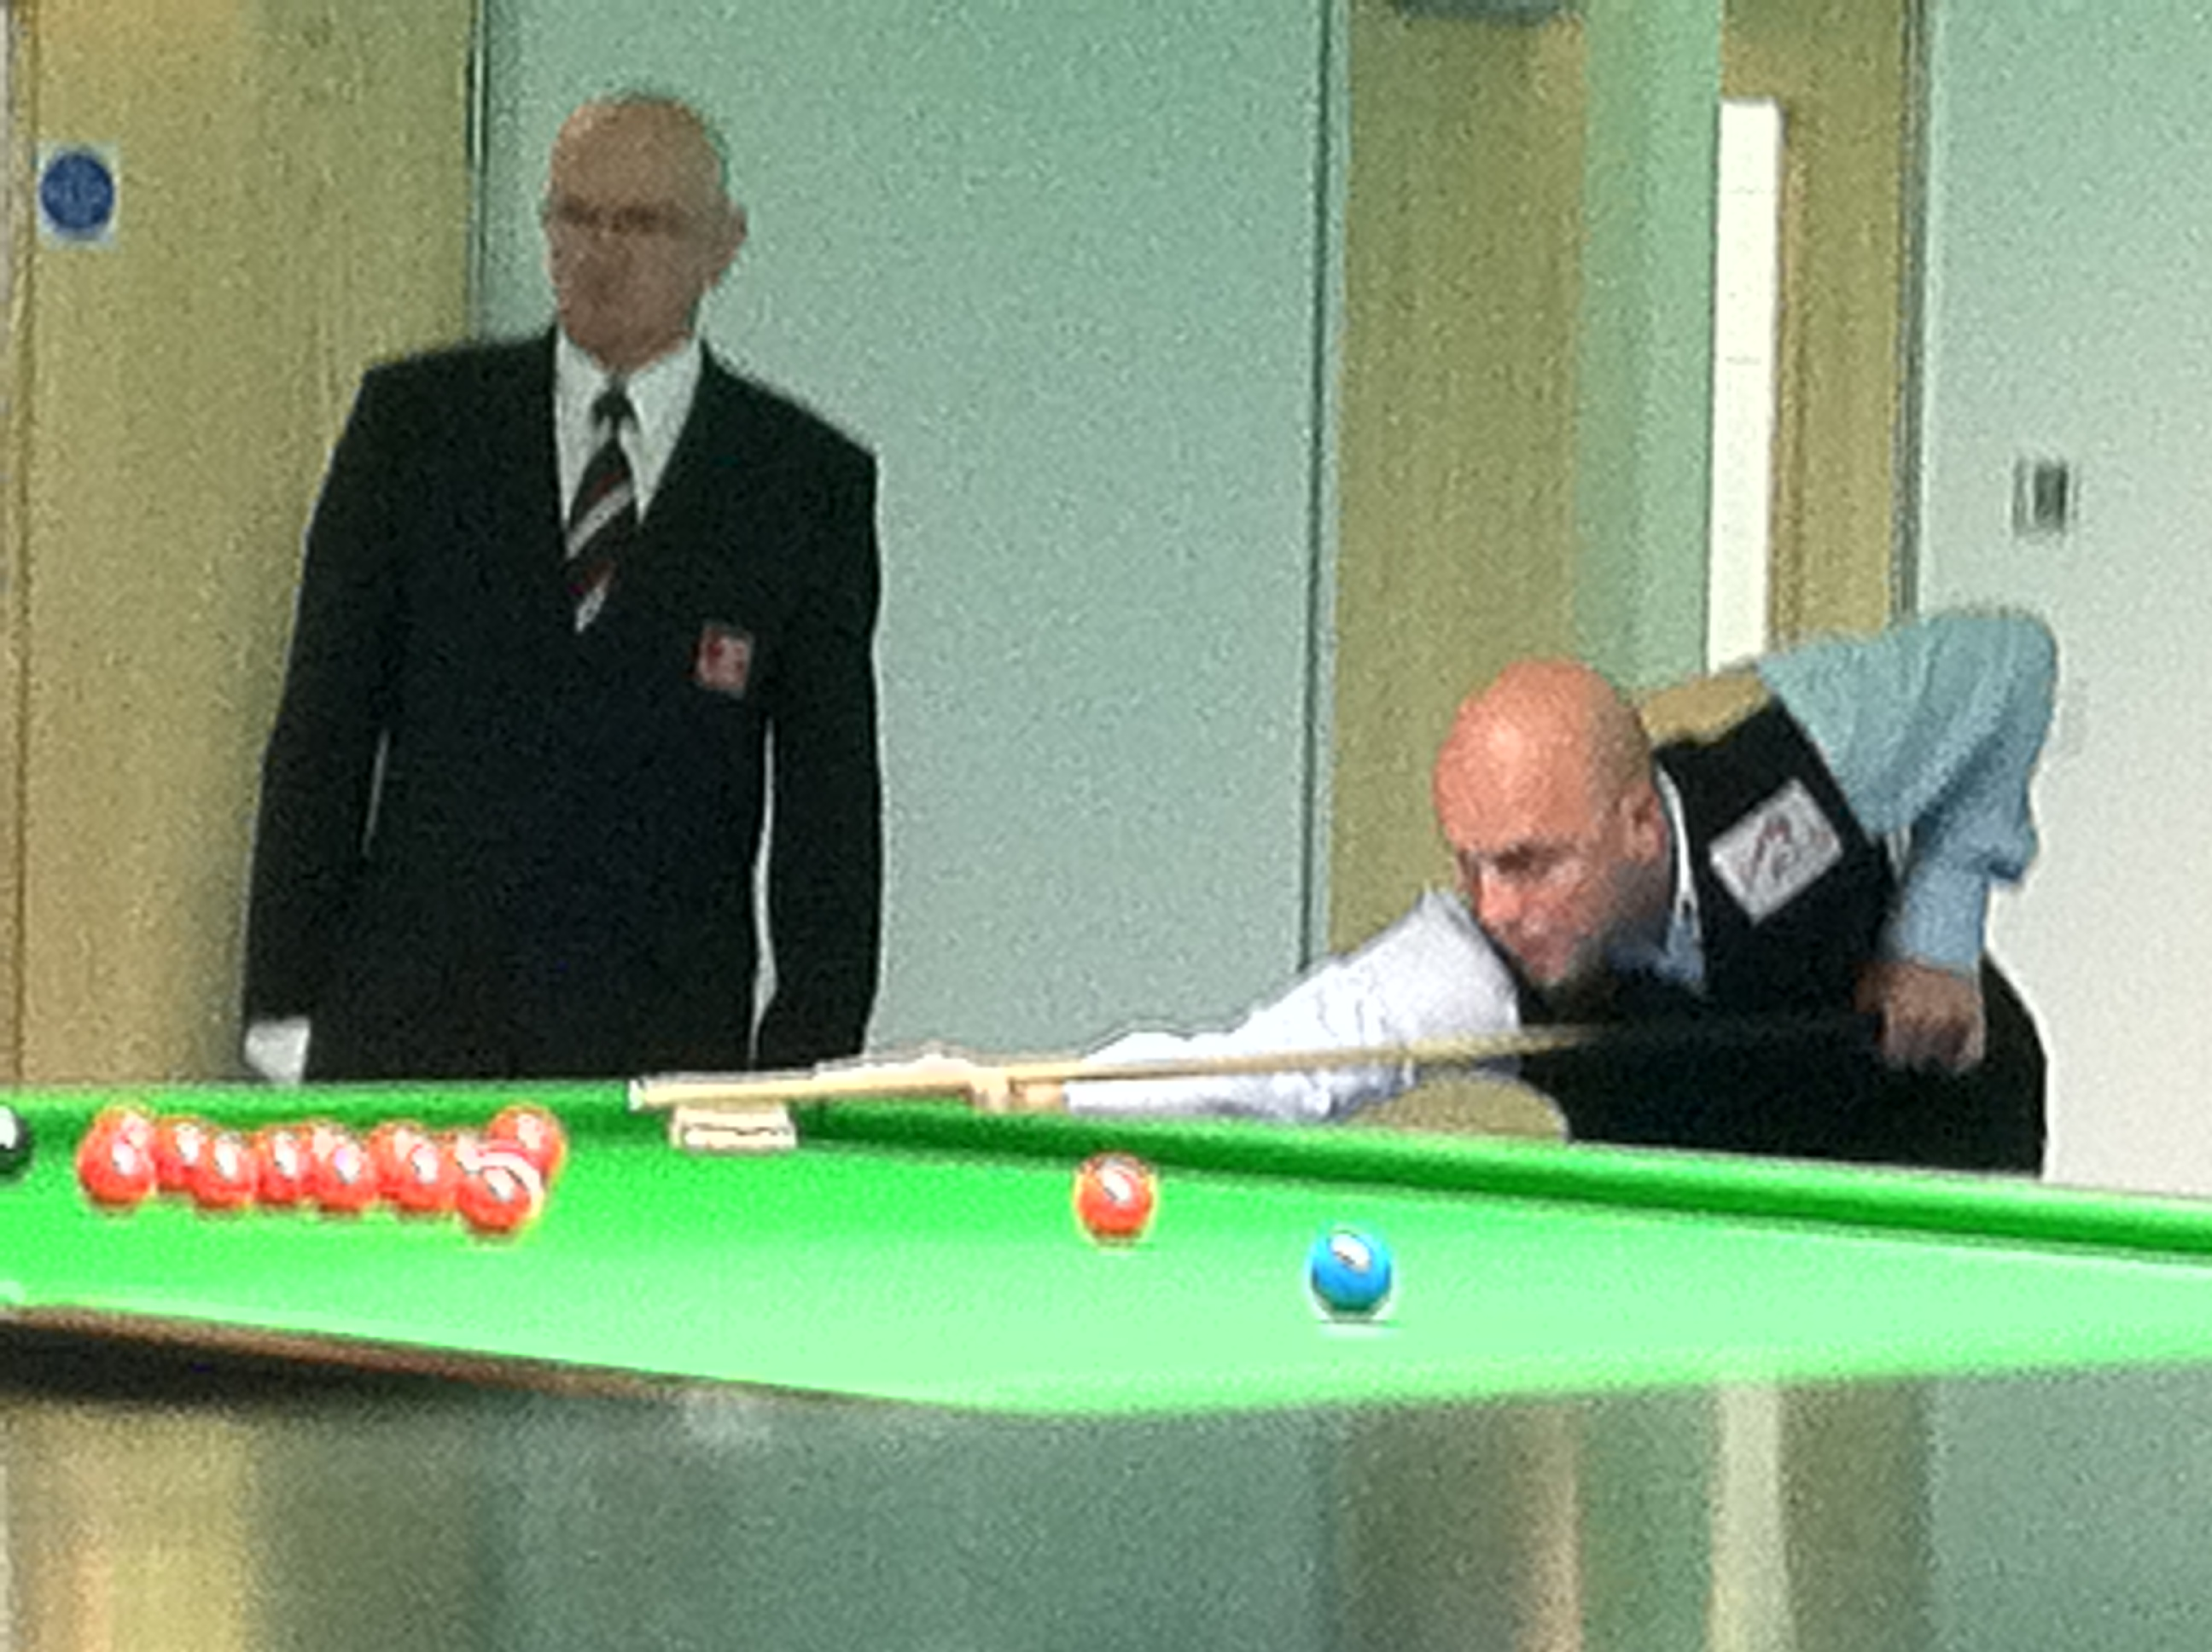 Mark Williams & Ding Junhui at the Masters